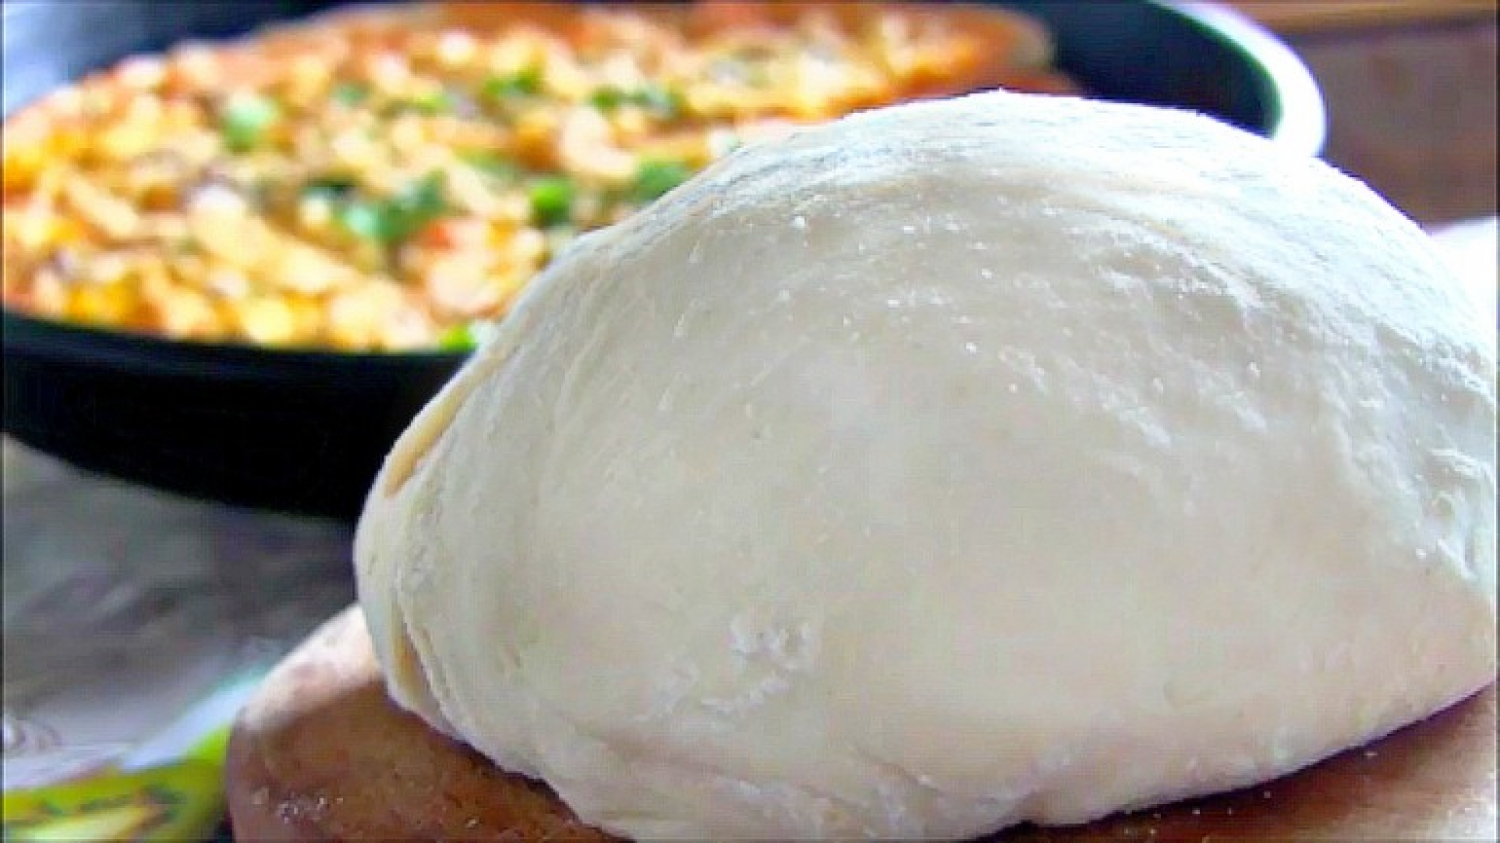 Pizza dough on beer  - foto 1603